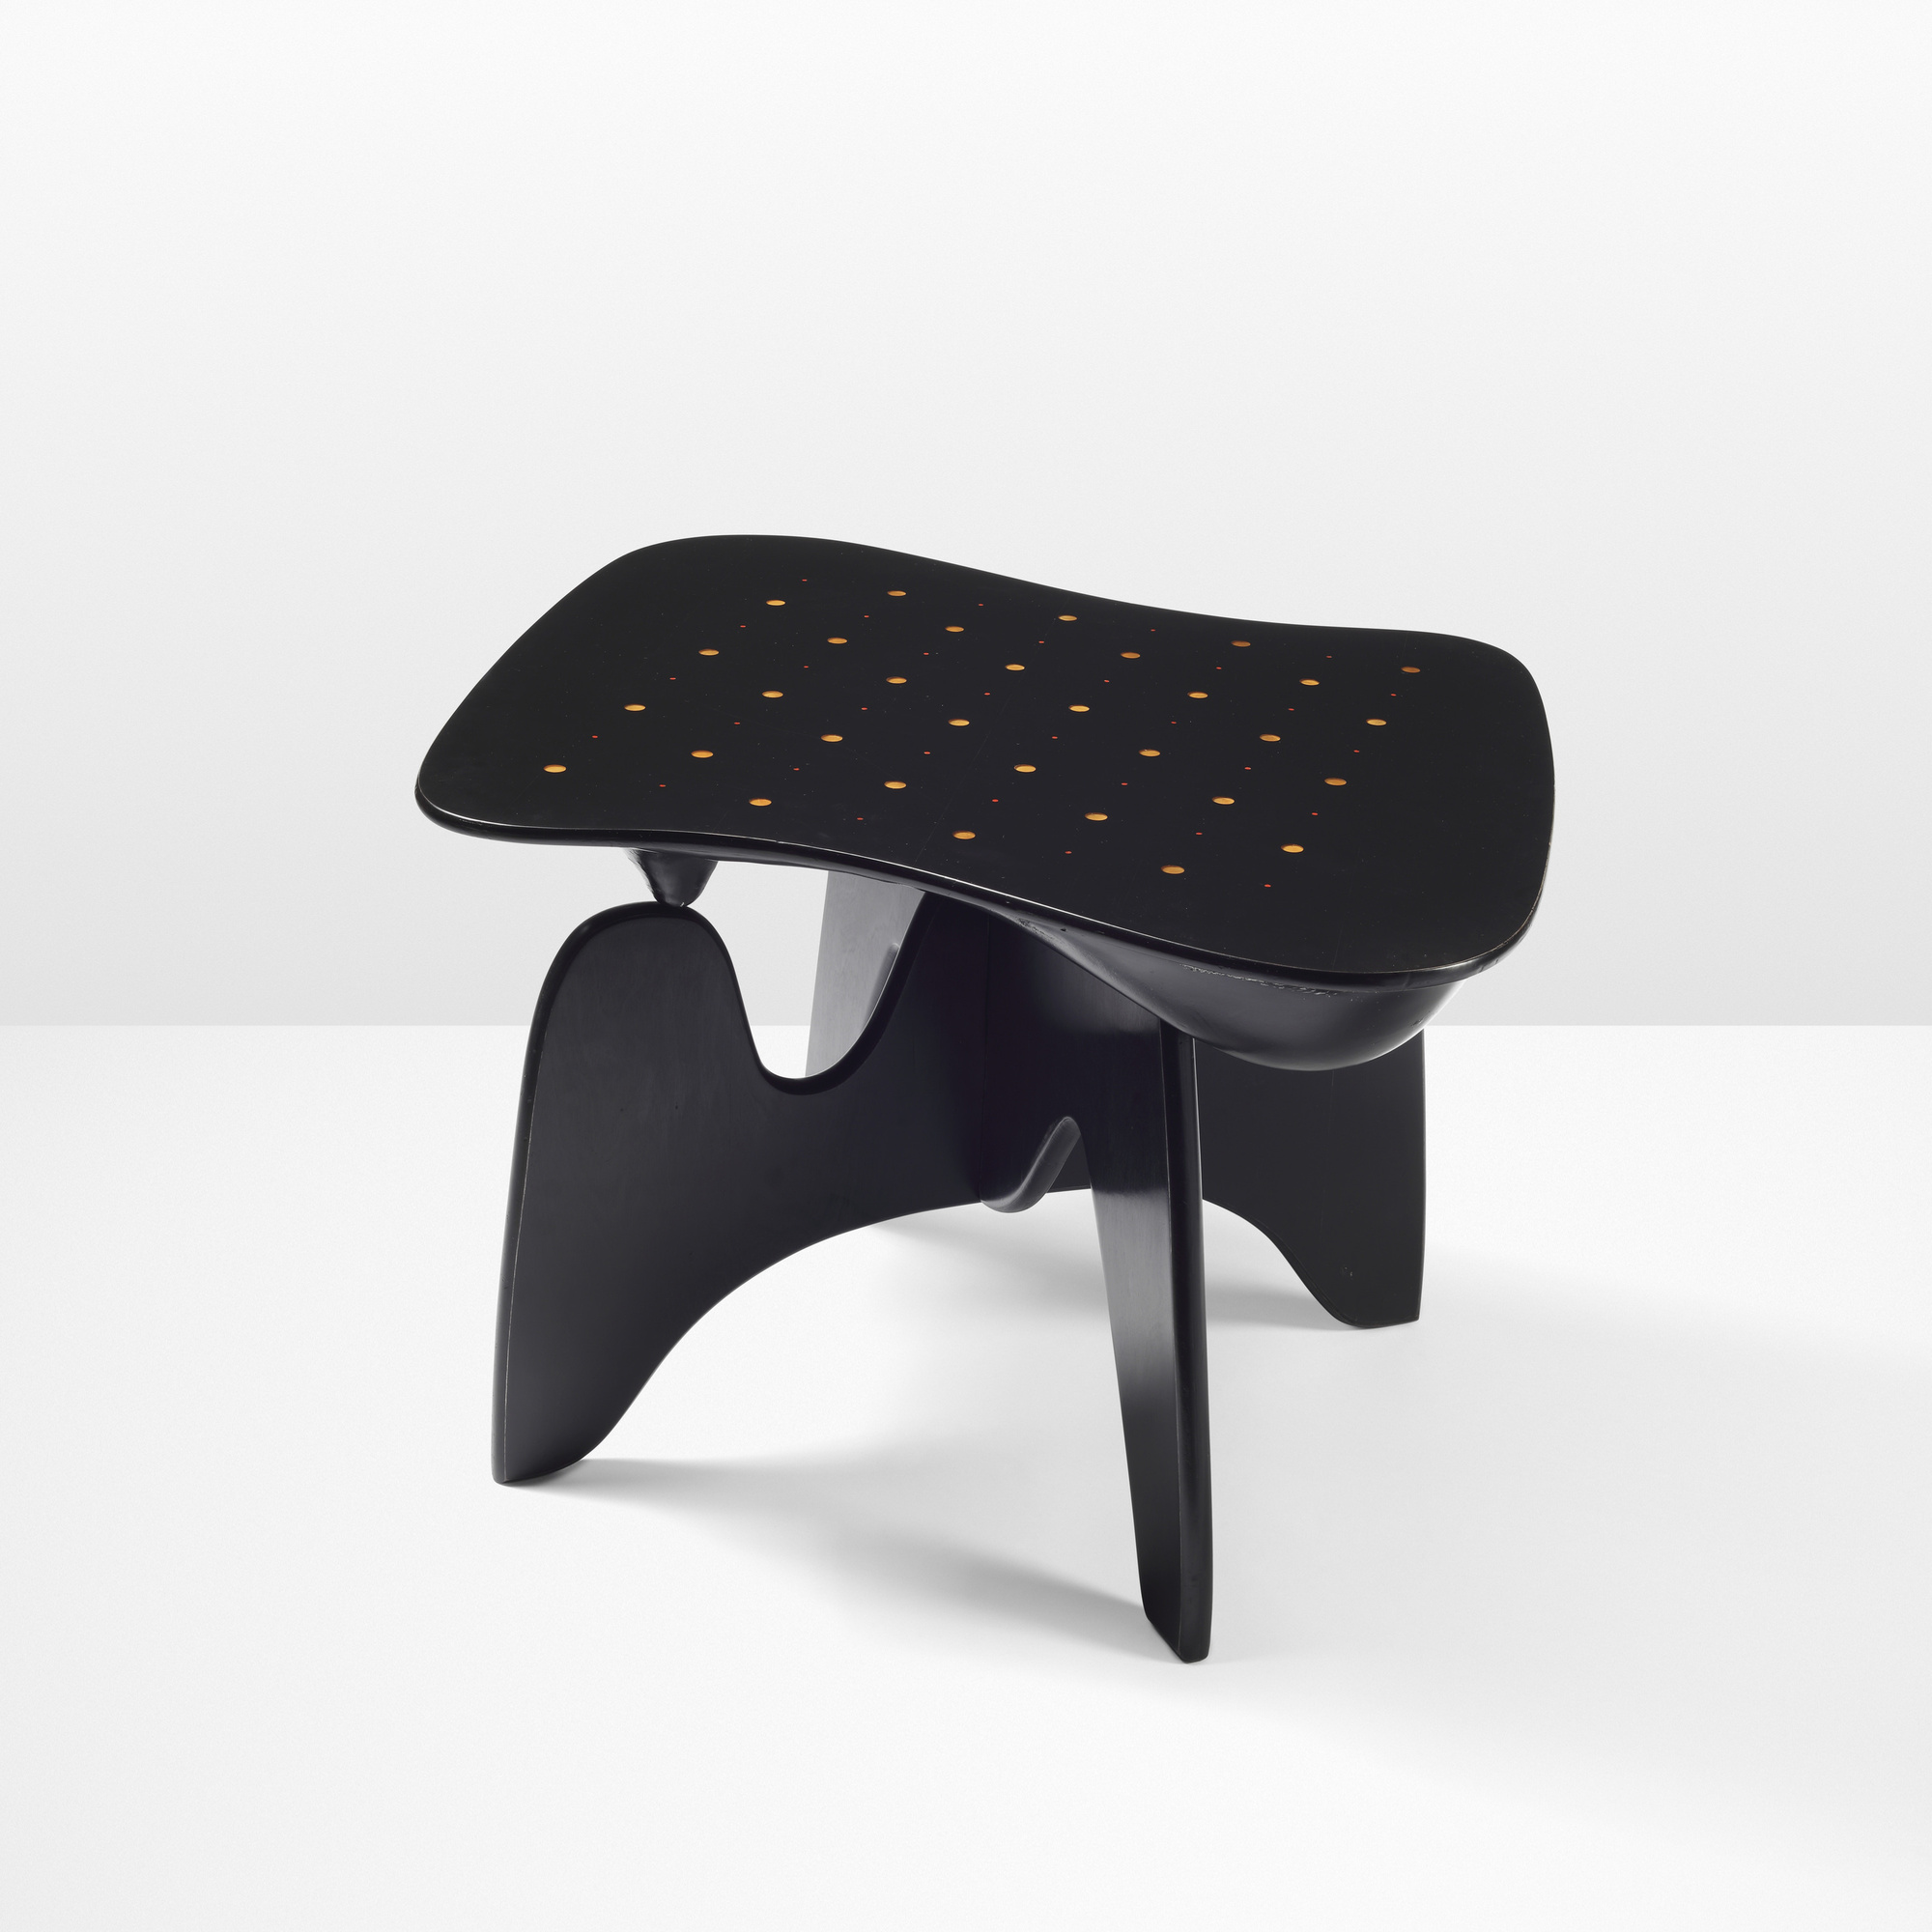 16: Isamu Noguchi / Rare and Important Chess table, model IN-61 (1 of 6)